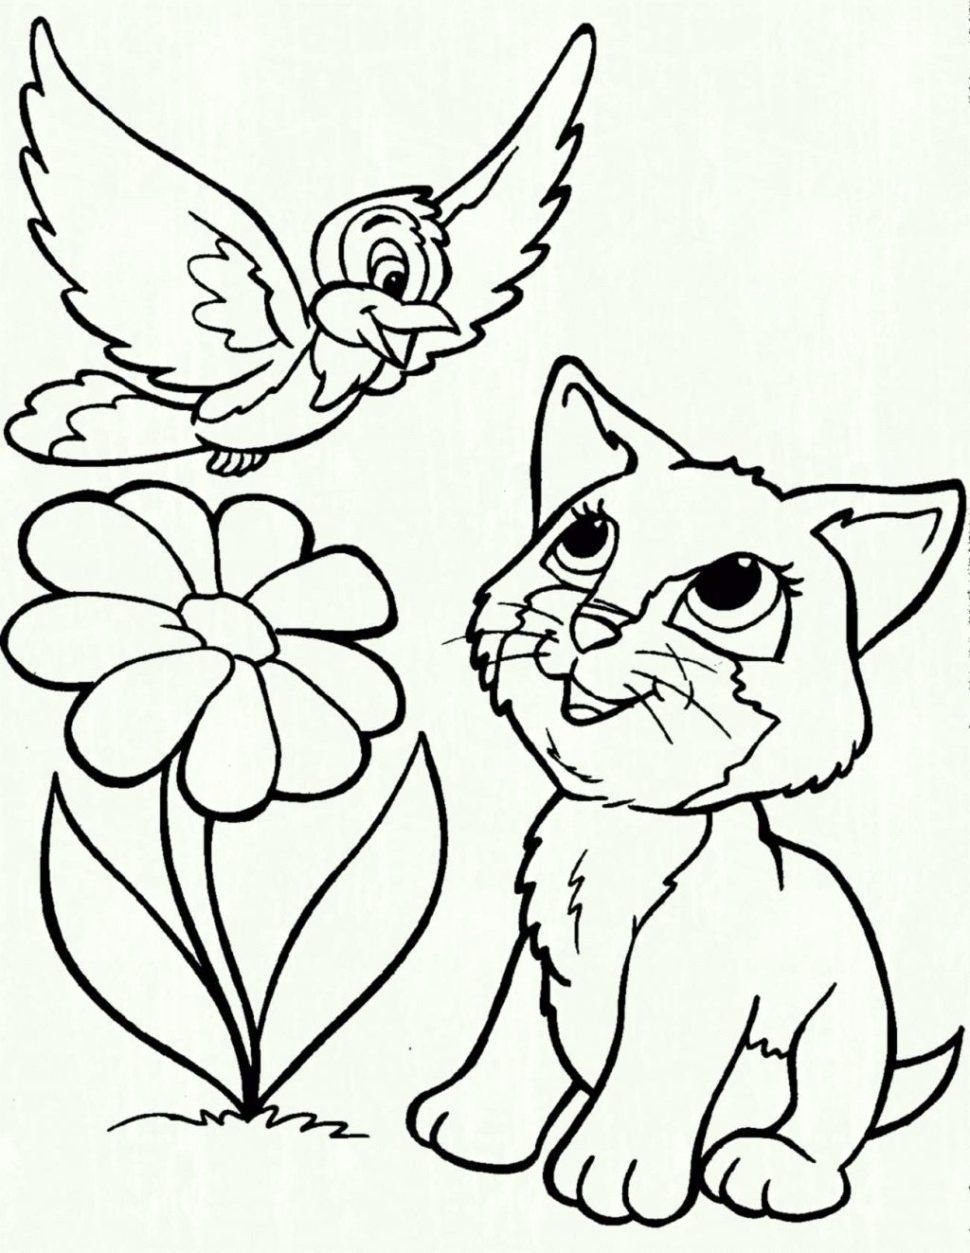 Coloring Page Cat And Dog Youngandtae Com Bird Coloring Pages Cat Coloring Page Kitten Coloring Book